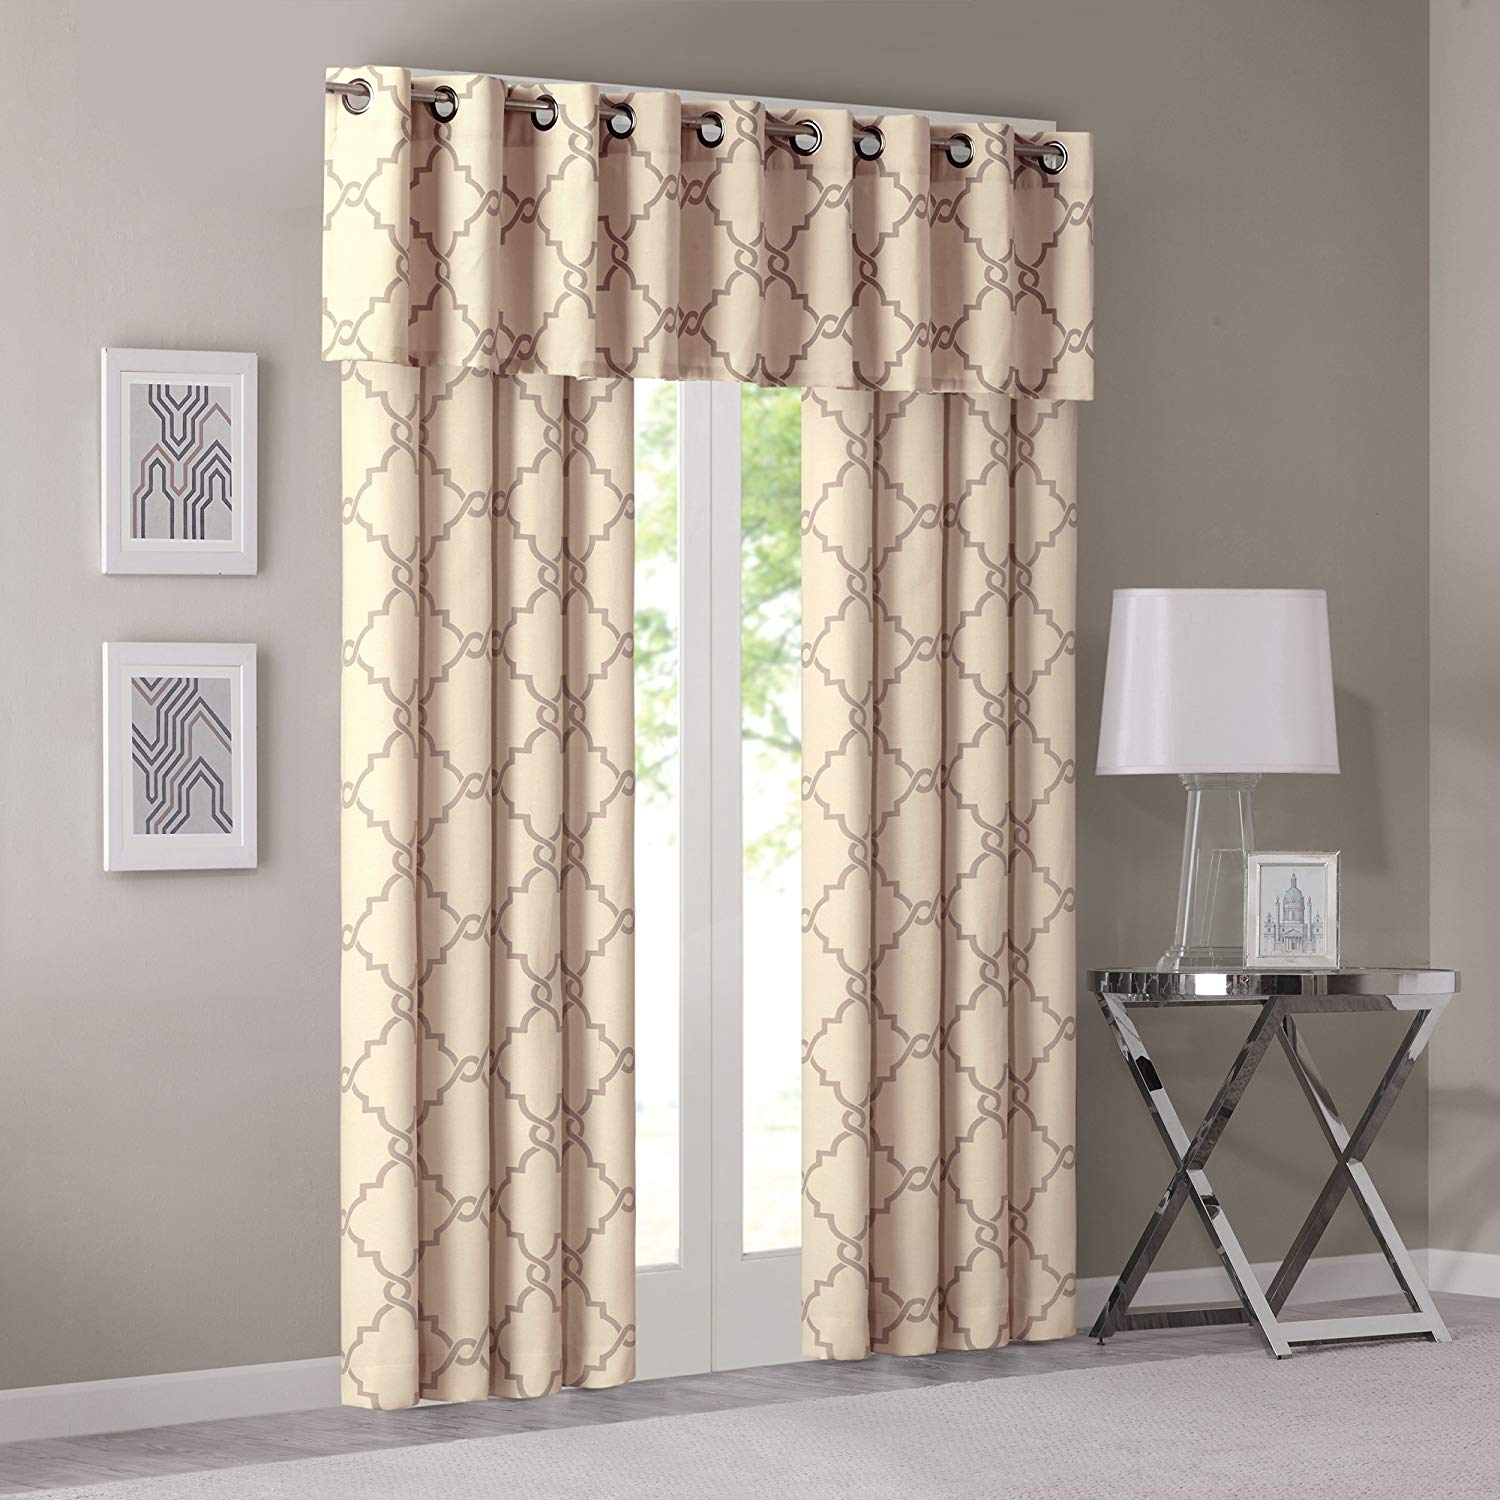 Yellow Curtains For Living Room Modern Contemporary Window Curtains For Bedroom Saratoga Print Fabric Grommet Window Curtains 50x84 1 Panel throughout Modern Window Treatments For Bedroom